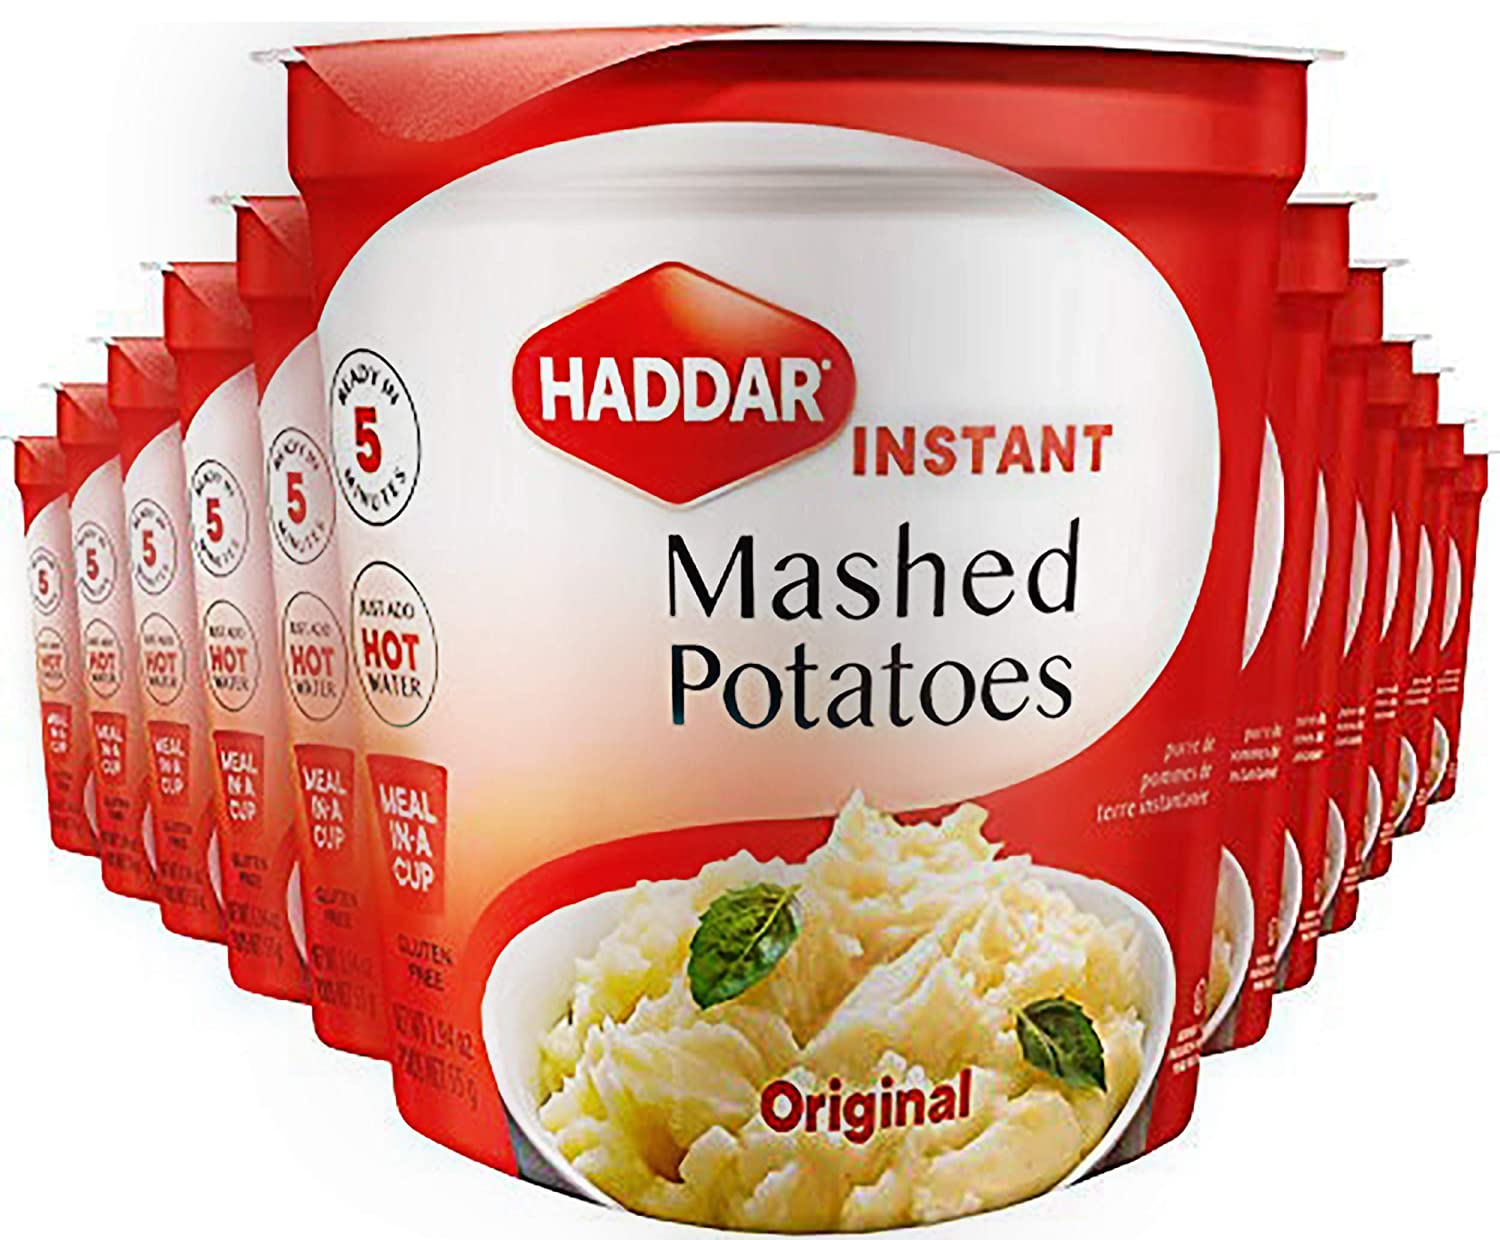 Haddar Gluten Free Original Instant Mashed Potatoes 1.94oz (12 Pack), Just Add Hot Water, Ready in 5 Minutes, Kosher for Passover